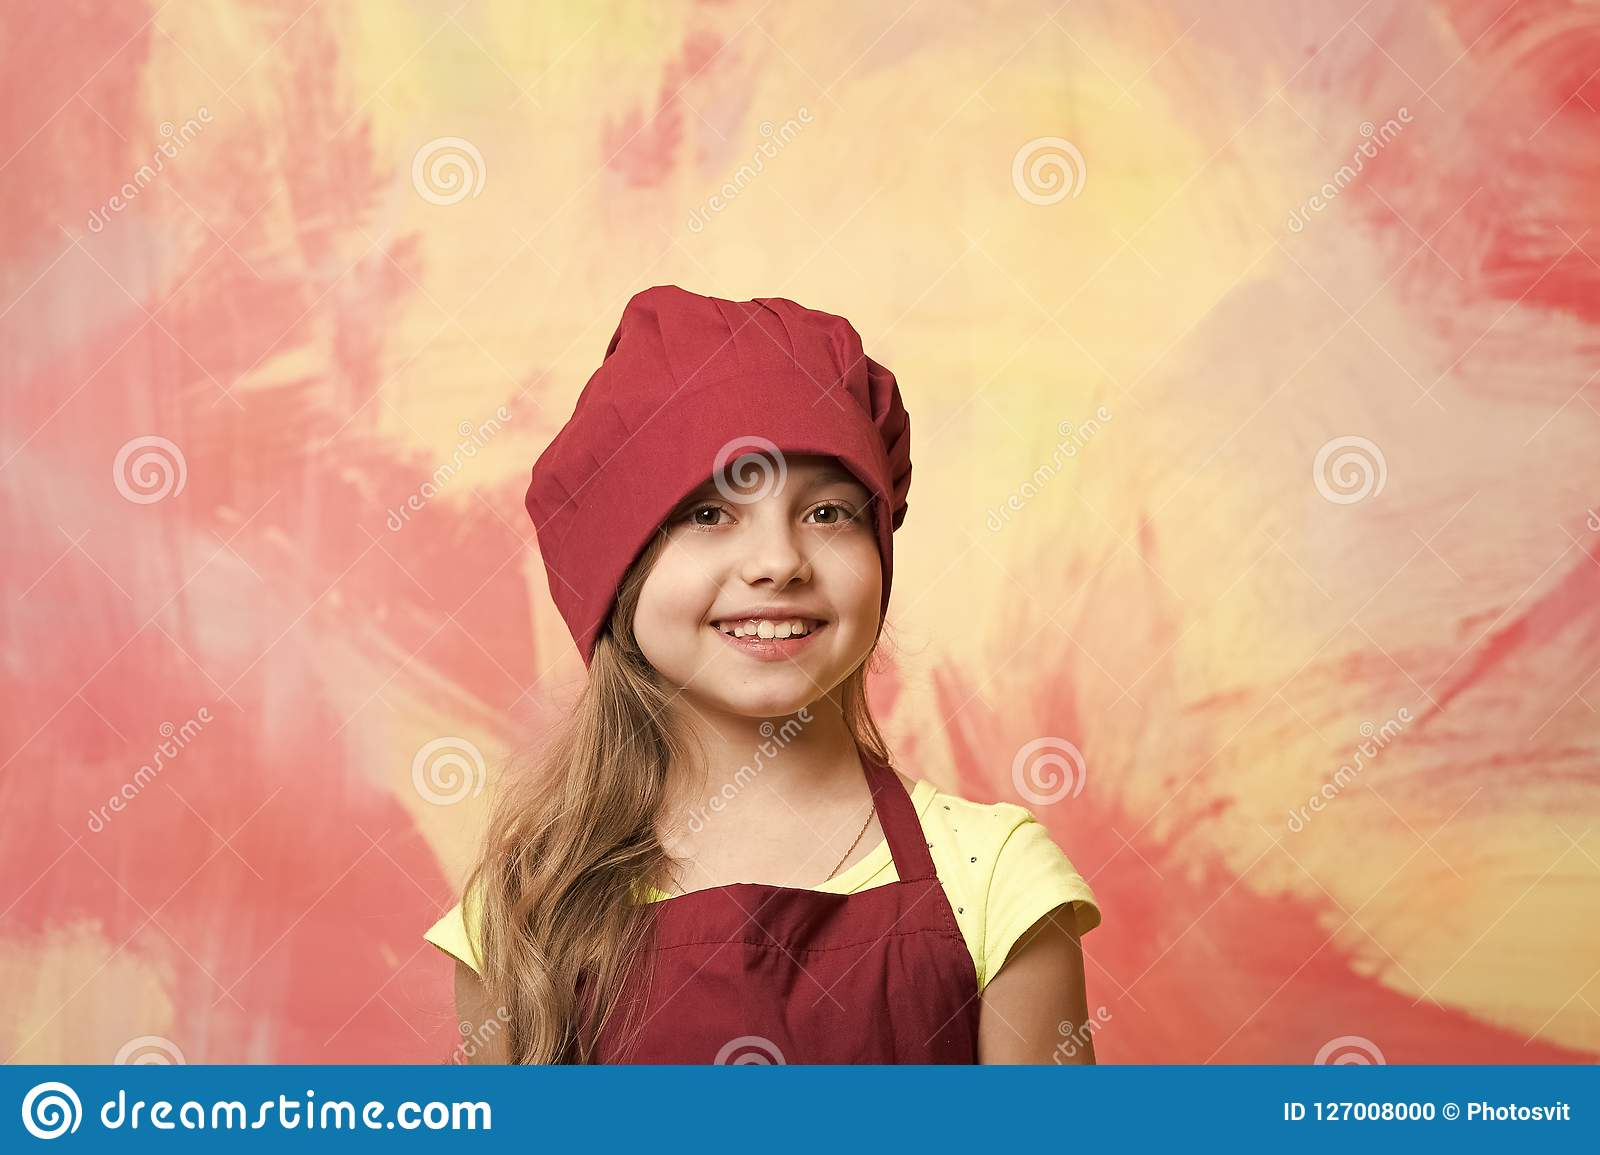 43c86c034ef Small baby girl or cute child with happy face in red chef hat and cook apron  on colorful abstract background